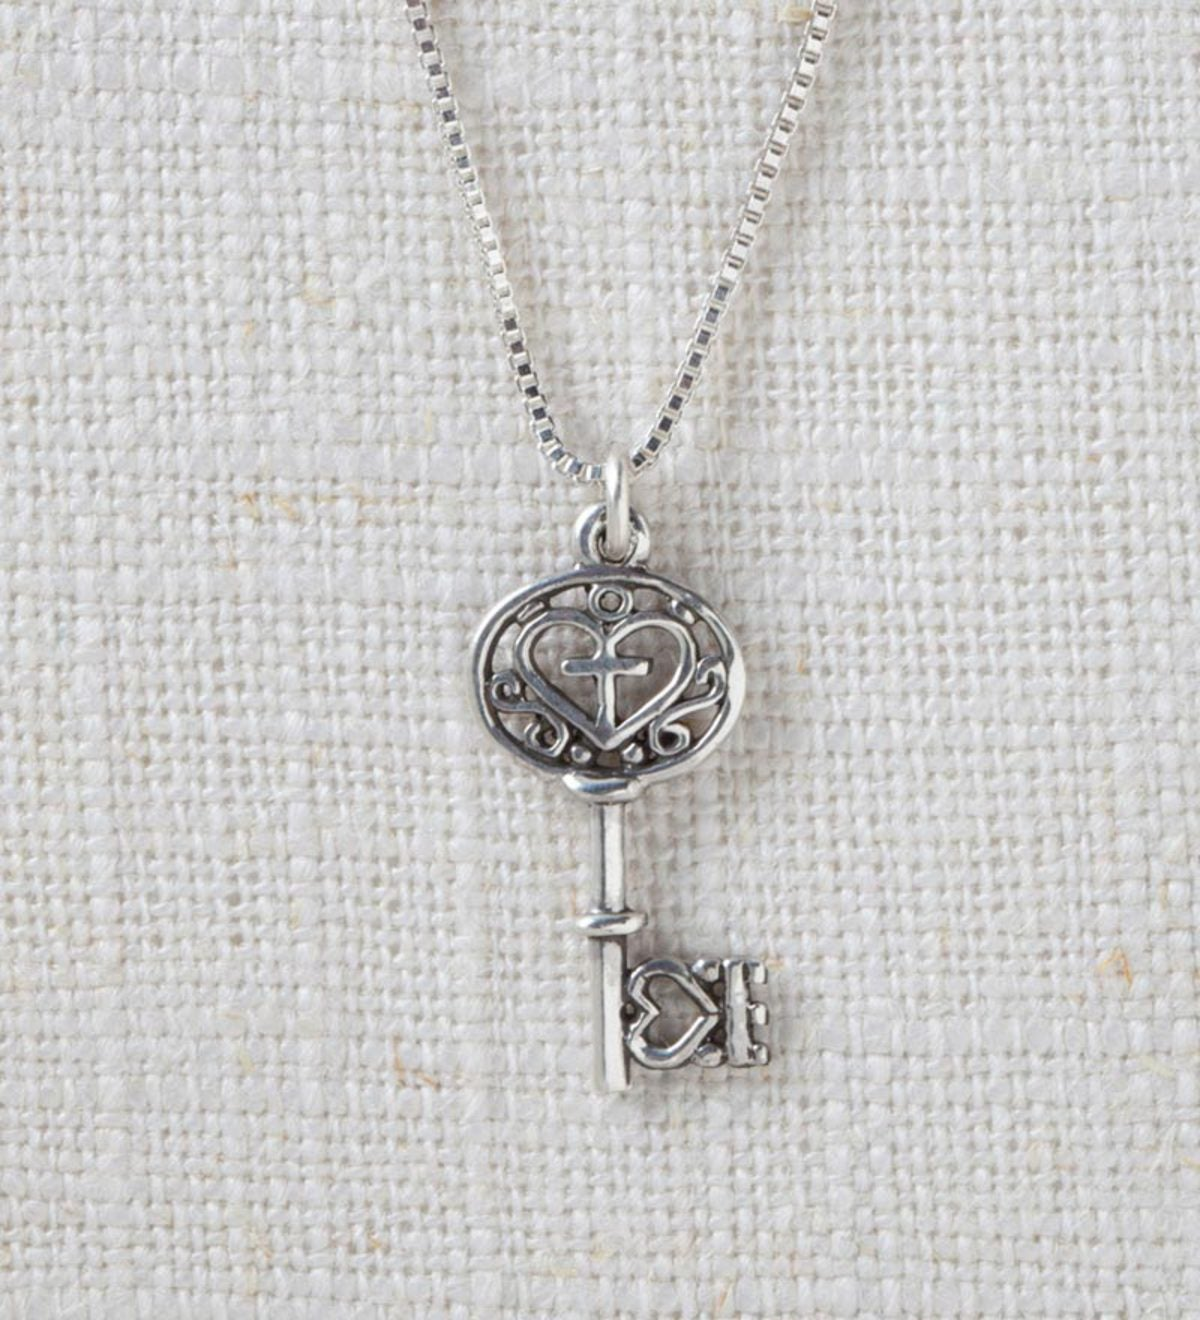 Sterling Silver Filigree Key Pendant and Small Round Point Cross Pendant - Key